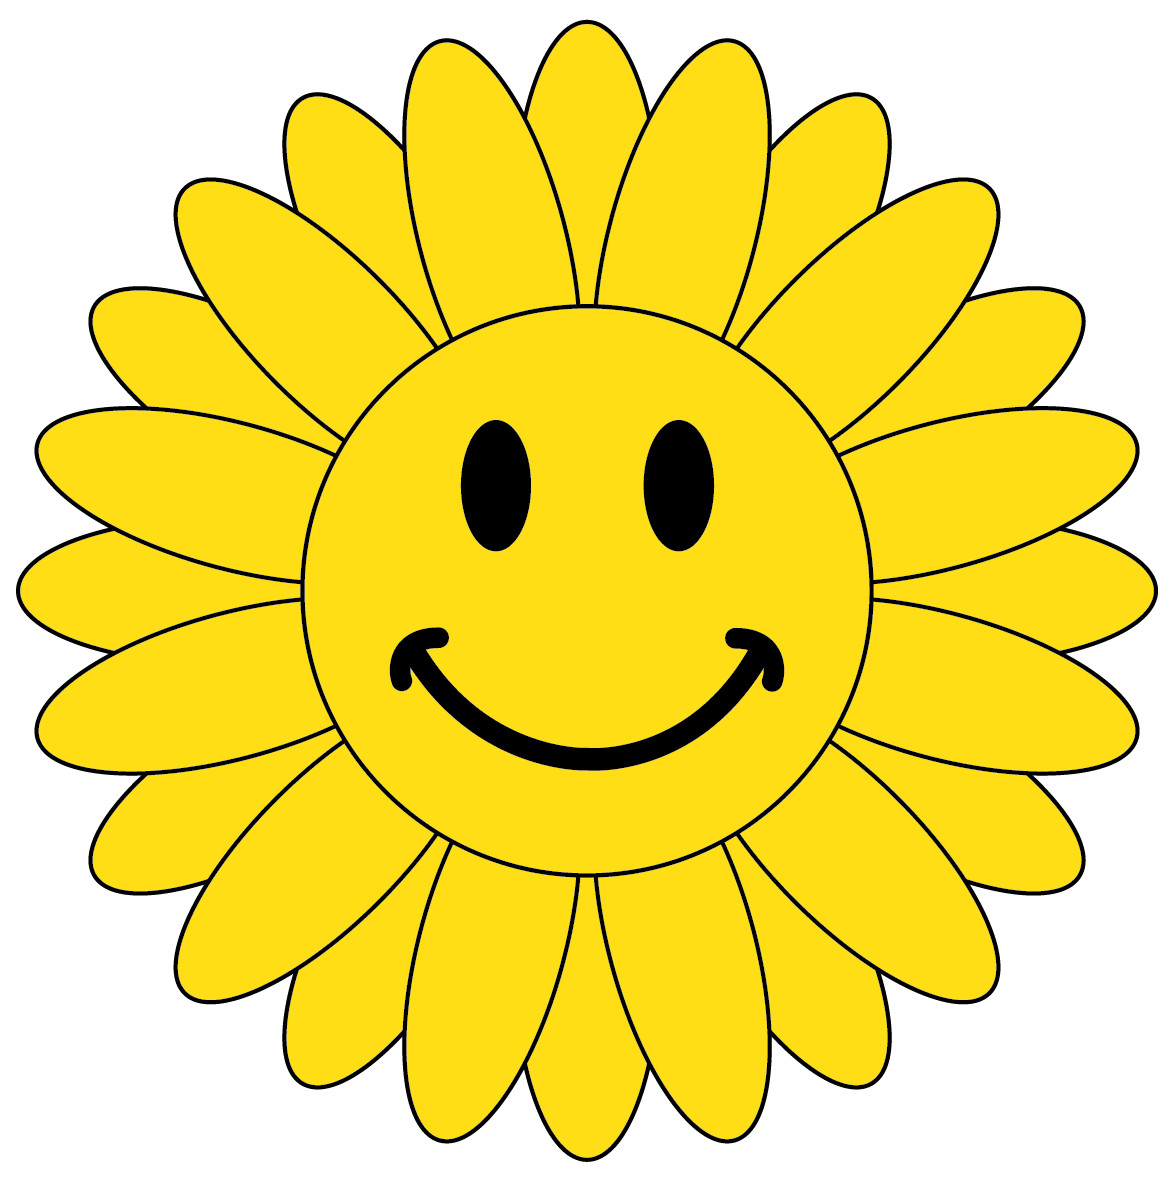 Free Smiley Flower Cliparts, Download Free Clip Art, Free.